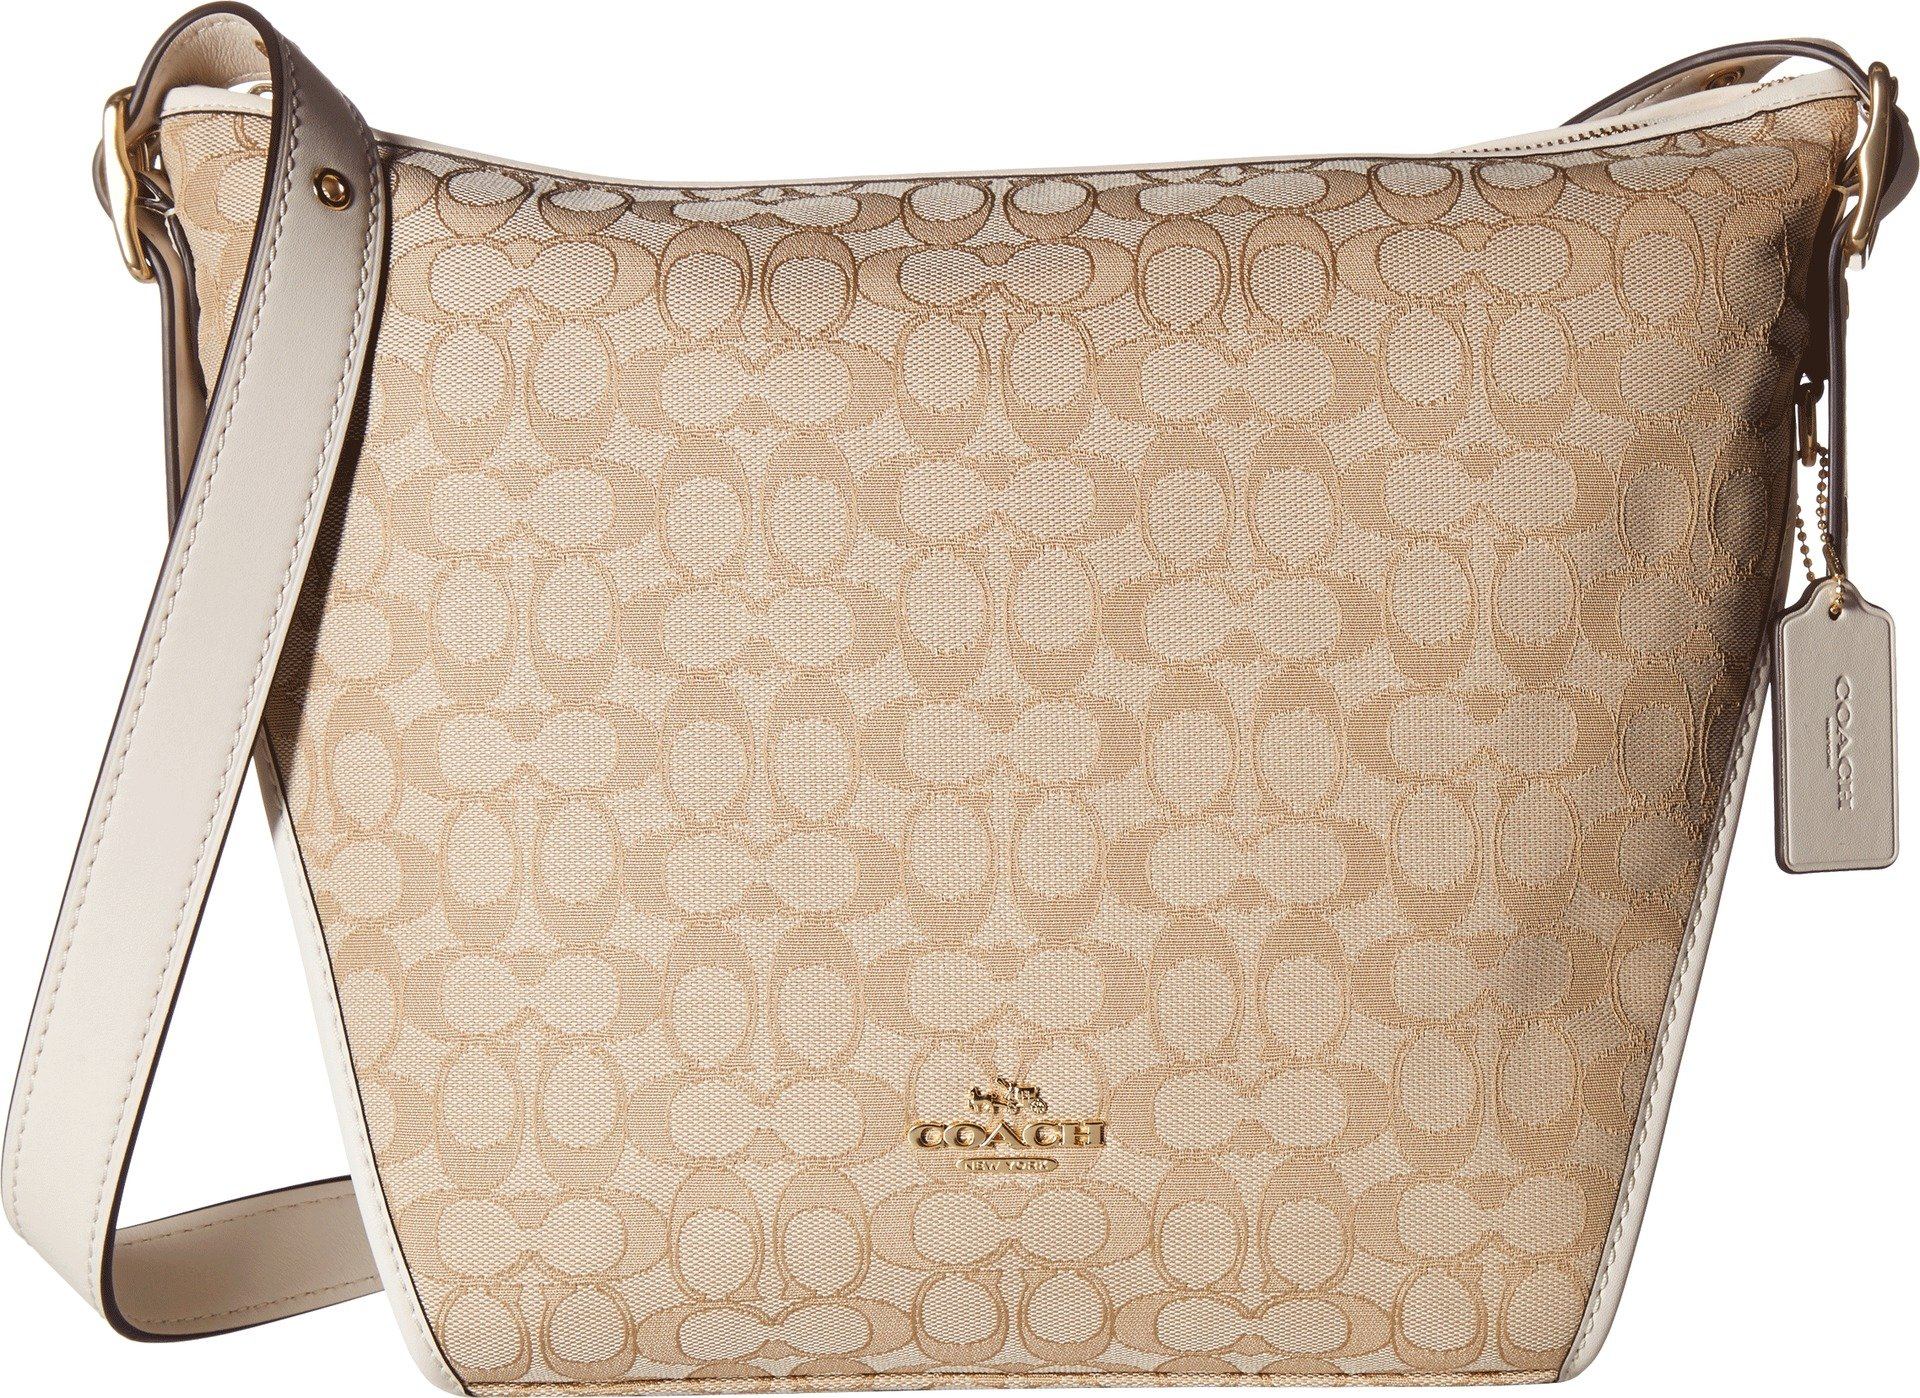 COACH Women's Dufflette in Signature Li/Light Khaki/Chalk One Size